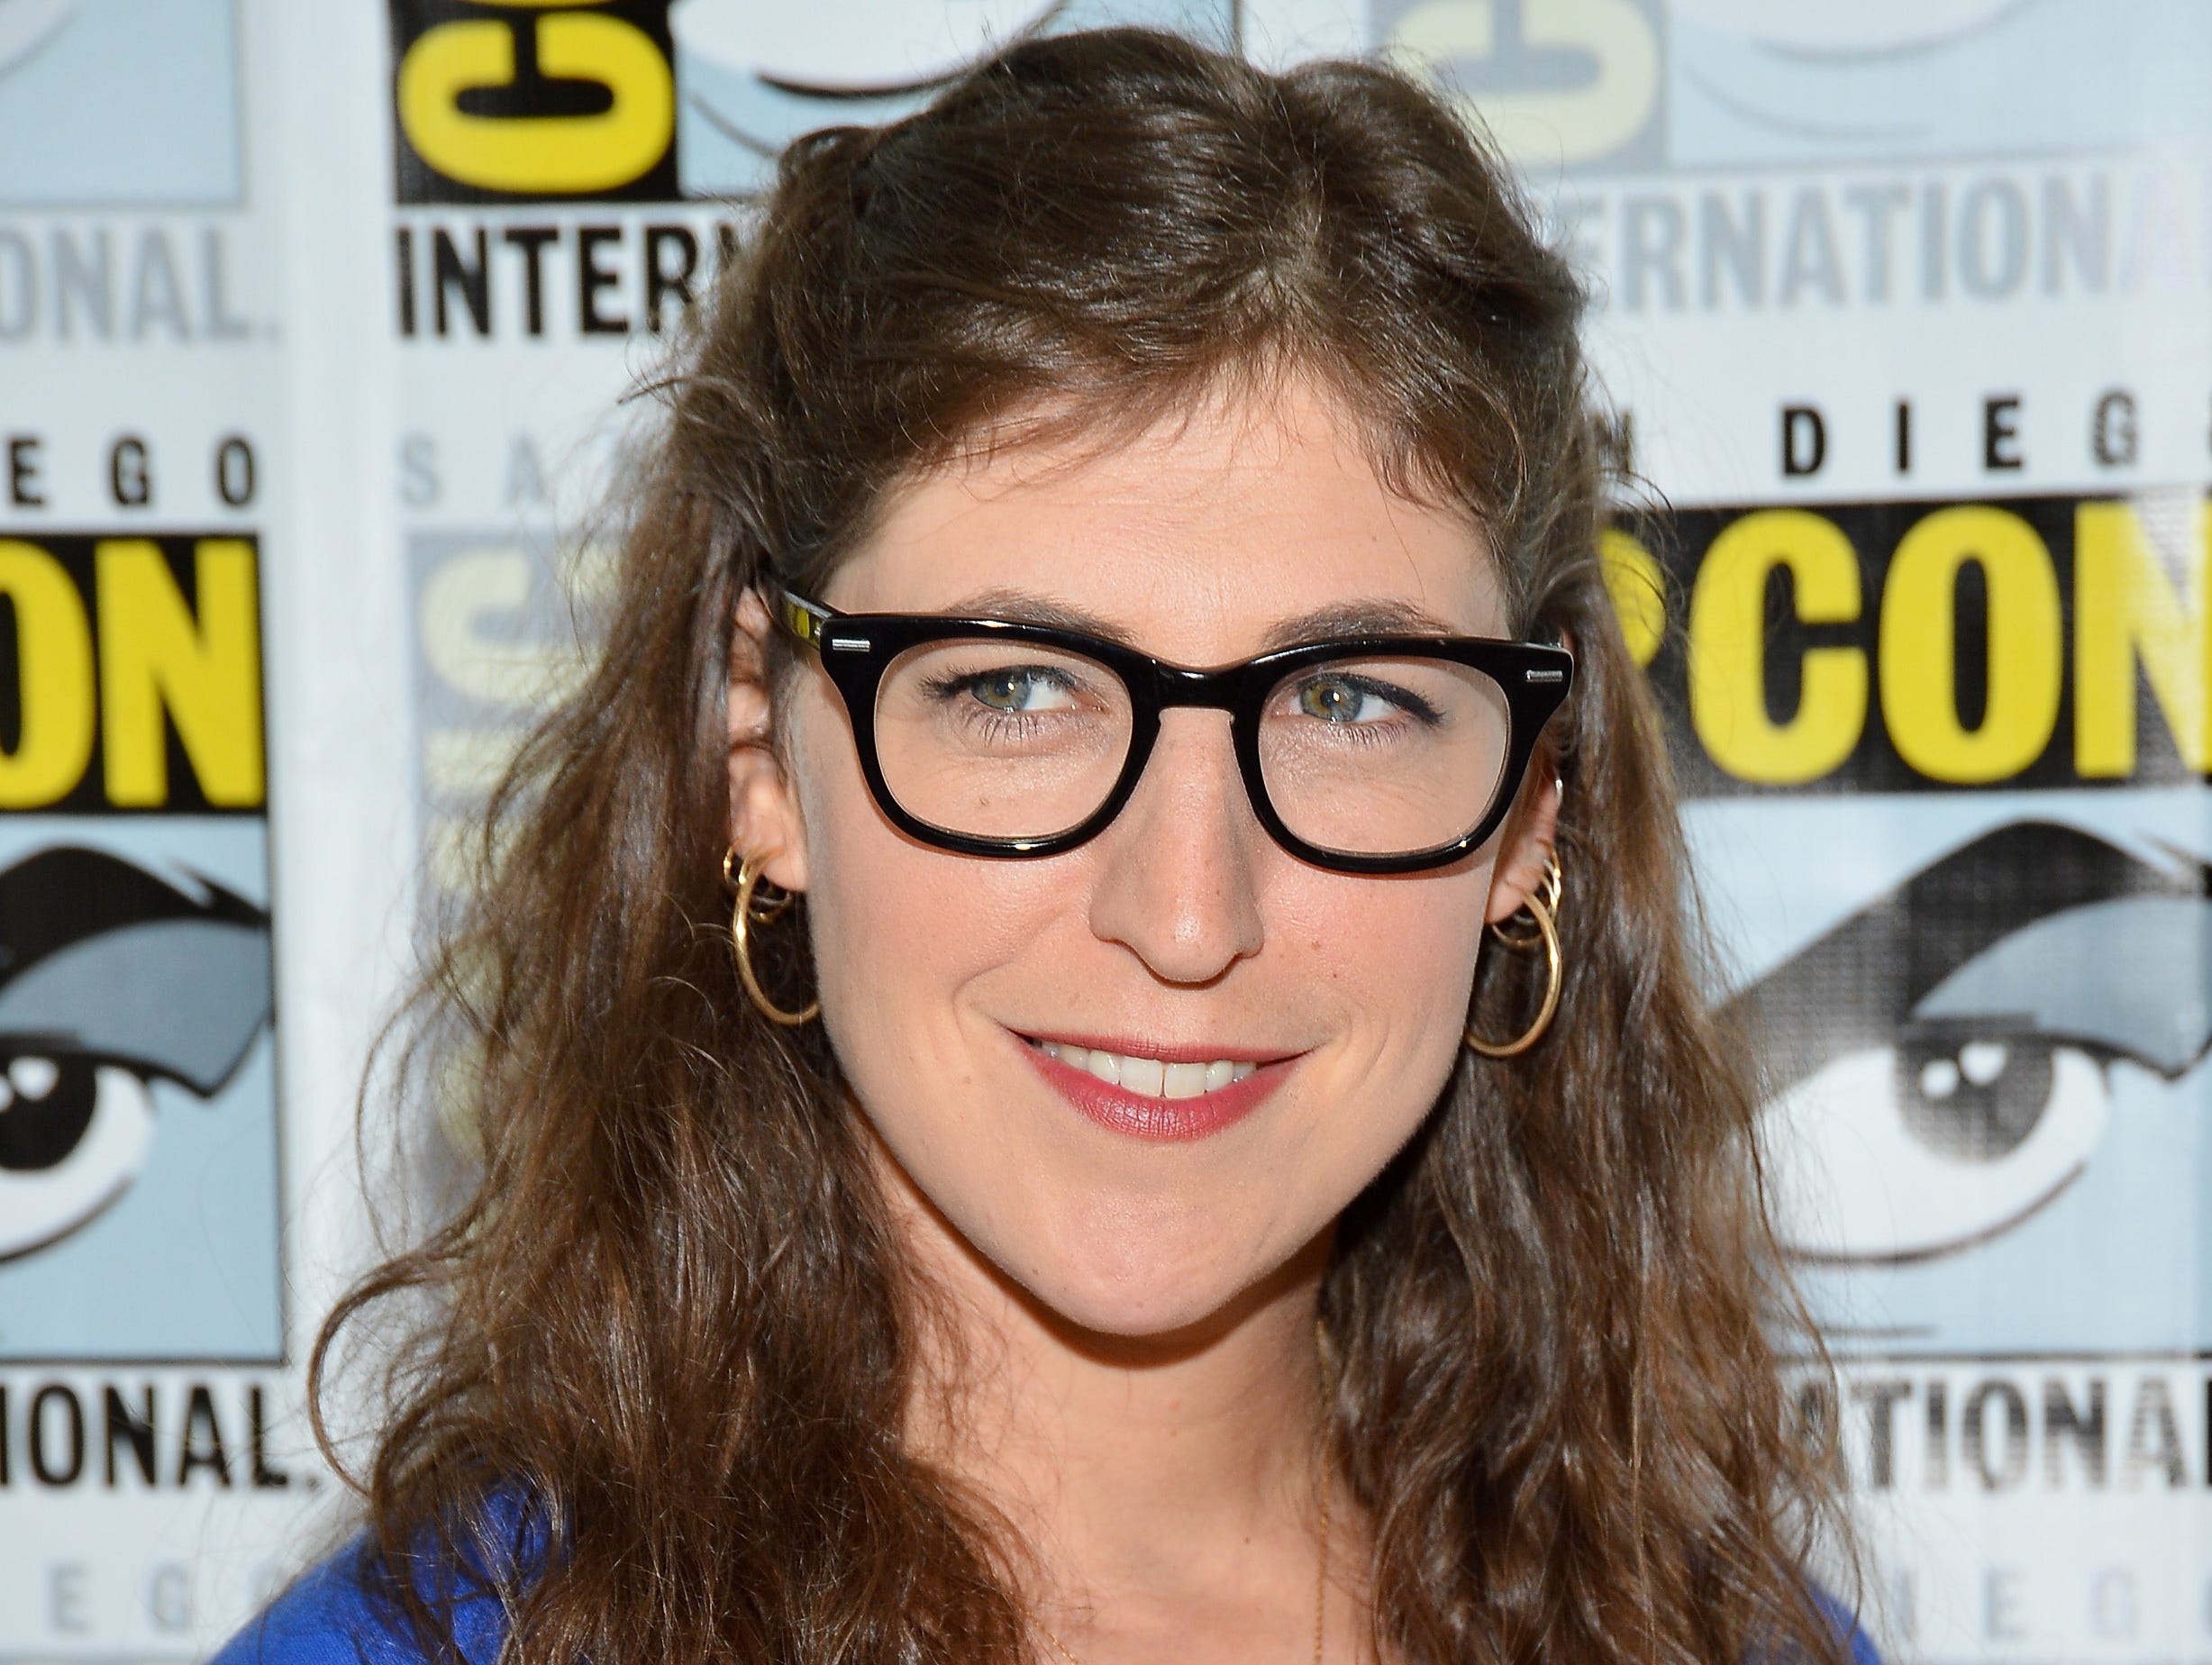 """ORG XMIT: 148188432 SAN DIEGO, CA - JULY 13:  Actress Mayim Bialik attends """"The Big Bang Theory"""" Press Room during Comic-Con International 2012 held at the Hilton San Diego Bayfront Hotel on July 13, 2012 in San Diego, California.  (Photo by Frazer Harrison/Getty Images) ORIG FILE ID: 148312757"""